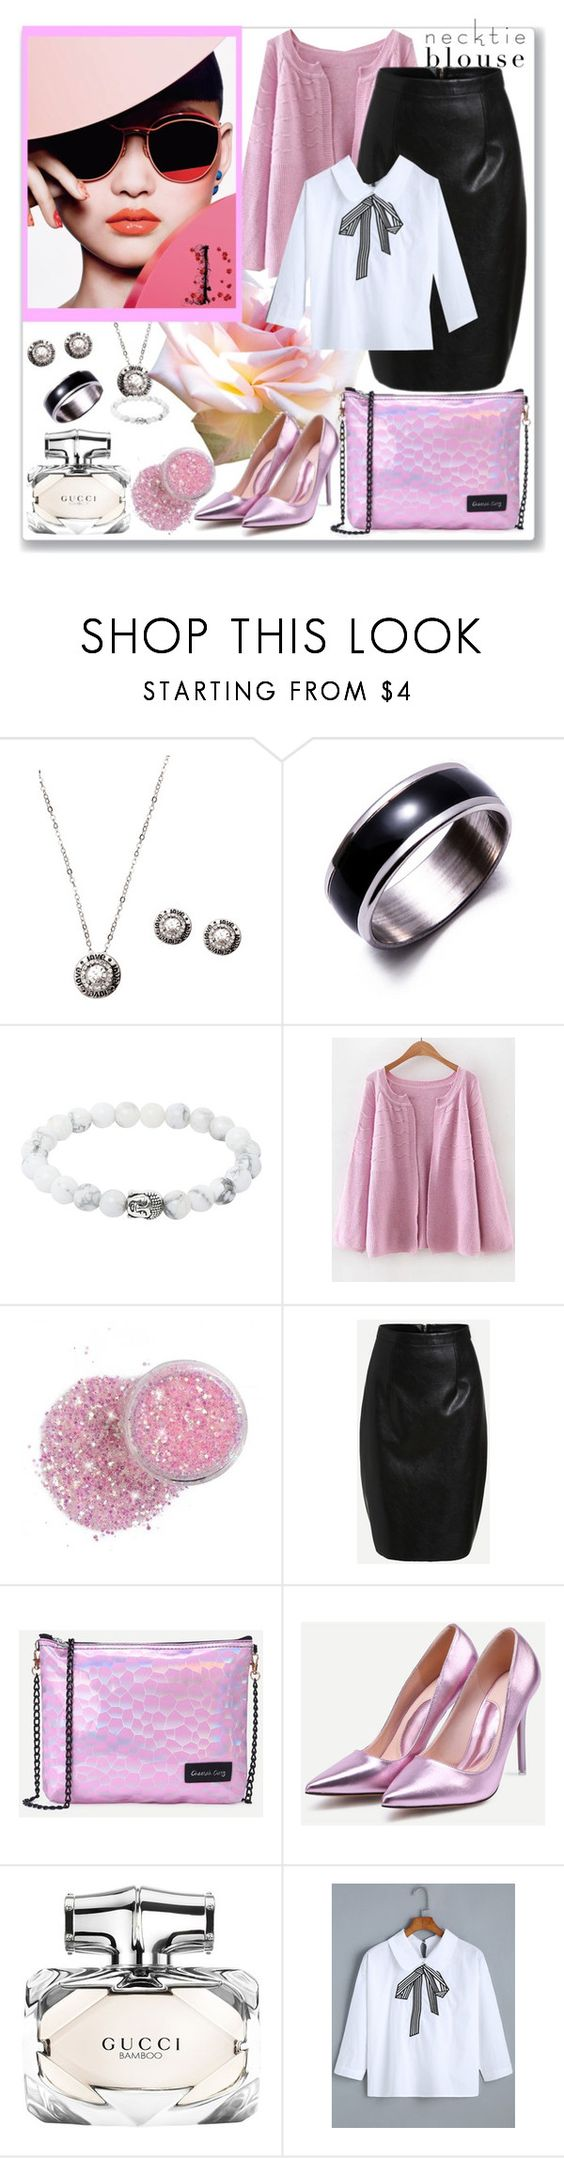 """""""www.romwe.com-XXIII-2"""" by ane-twist ❤ liked on Polyvore featuring Gucci and romwe"""